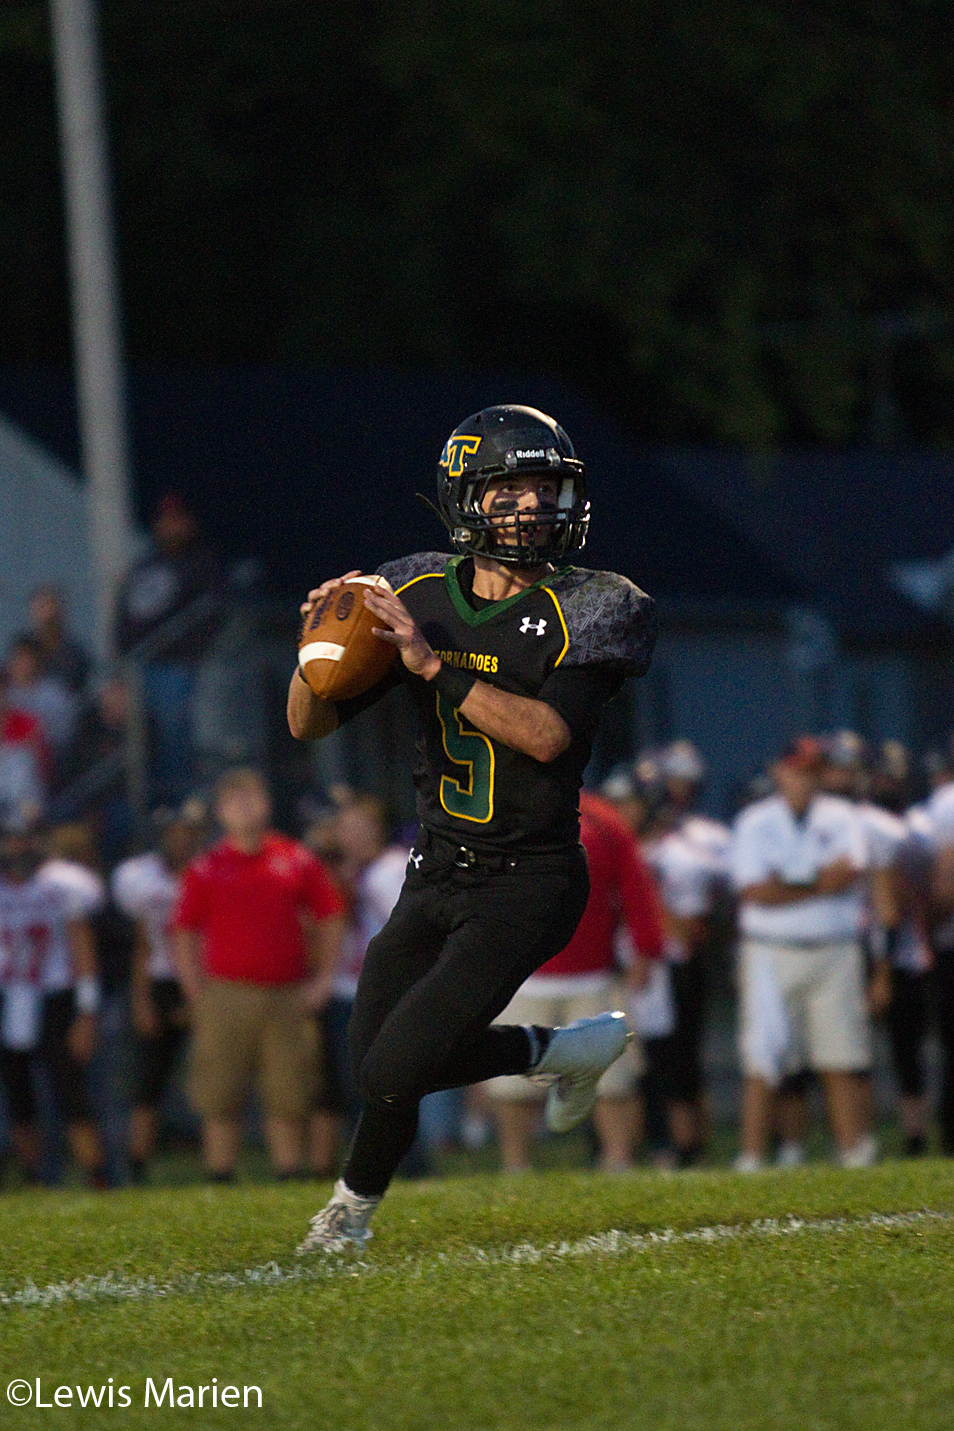 Abingdon-Avon quarterback Bo Glaser looks for an open teammate during the Tornadoes' game against North Fulton on Sept. 11 in Abingdon, Ill. The Tornadoes won 38-20.